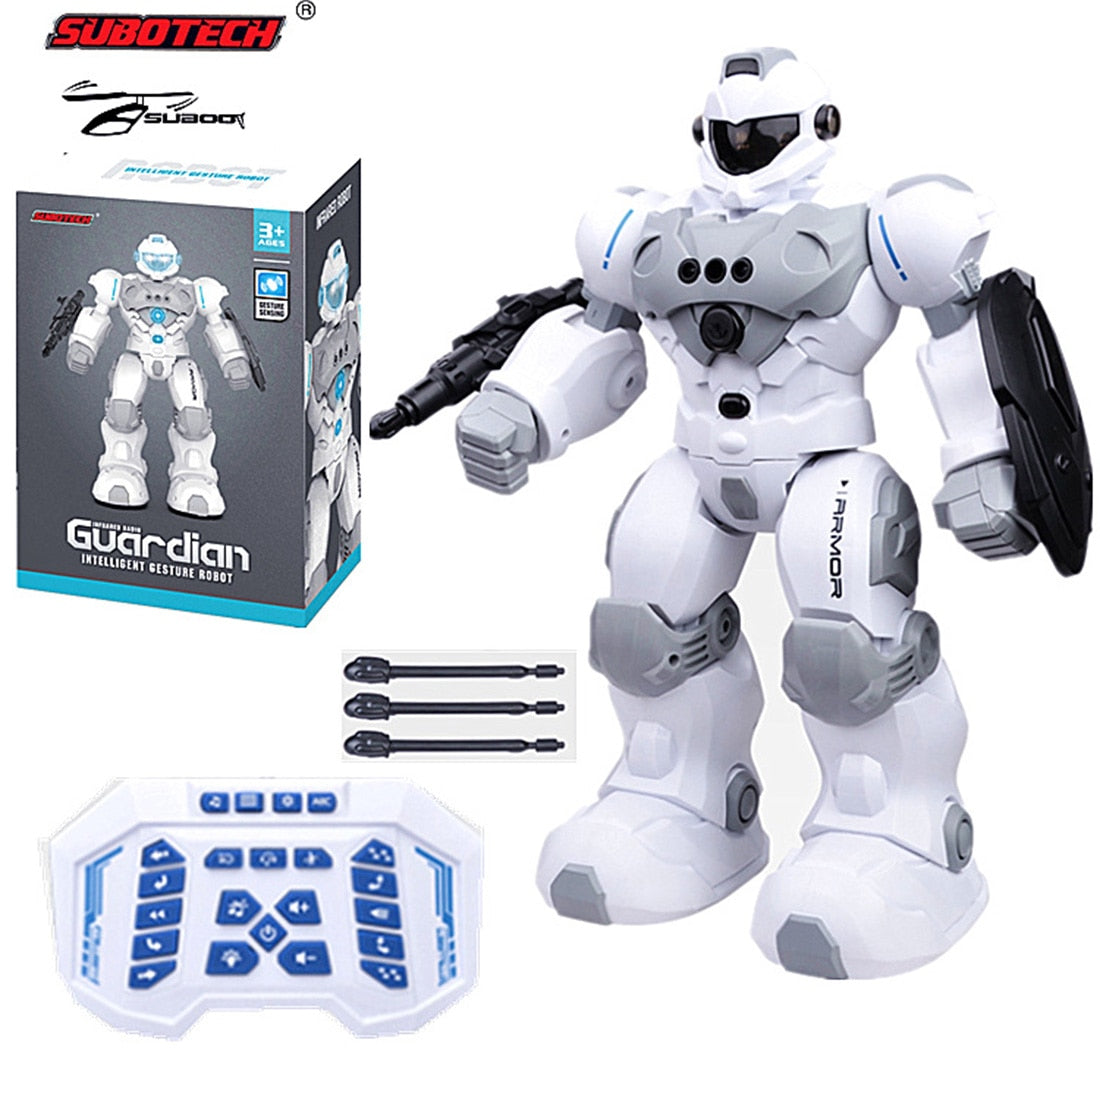 Remote Control Gesture Sensing Educational Kids Robot